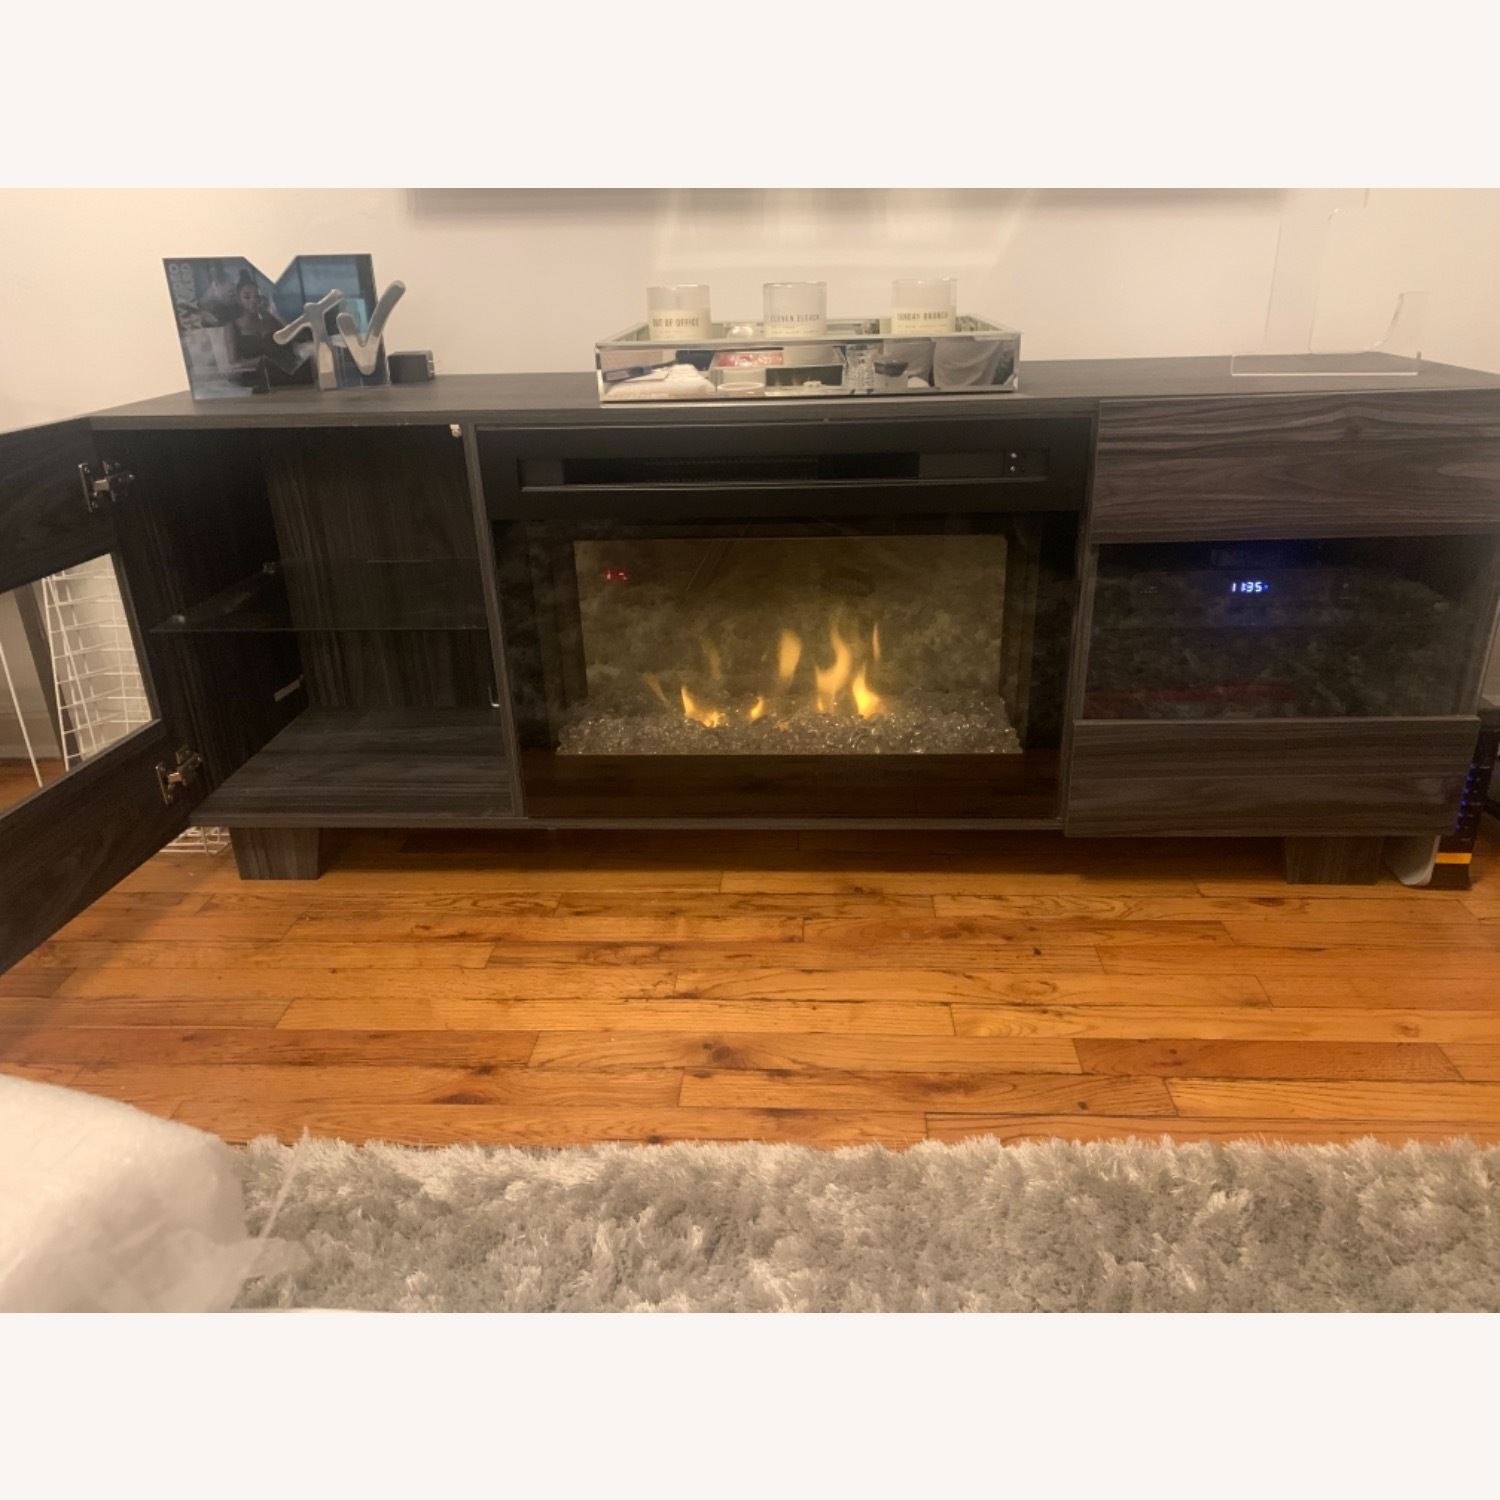 Wayfair Max TV Stand with Electric Fireplace by Dimplex - image-10